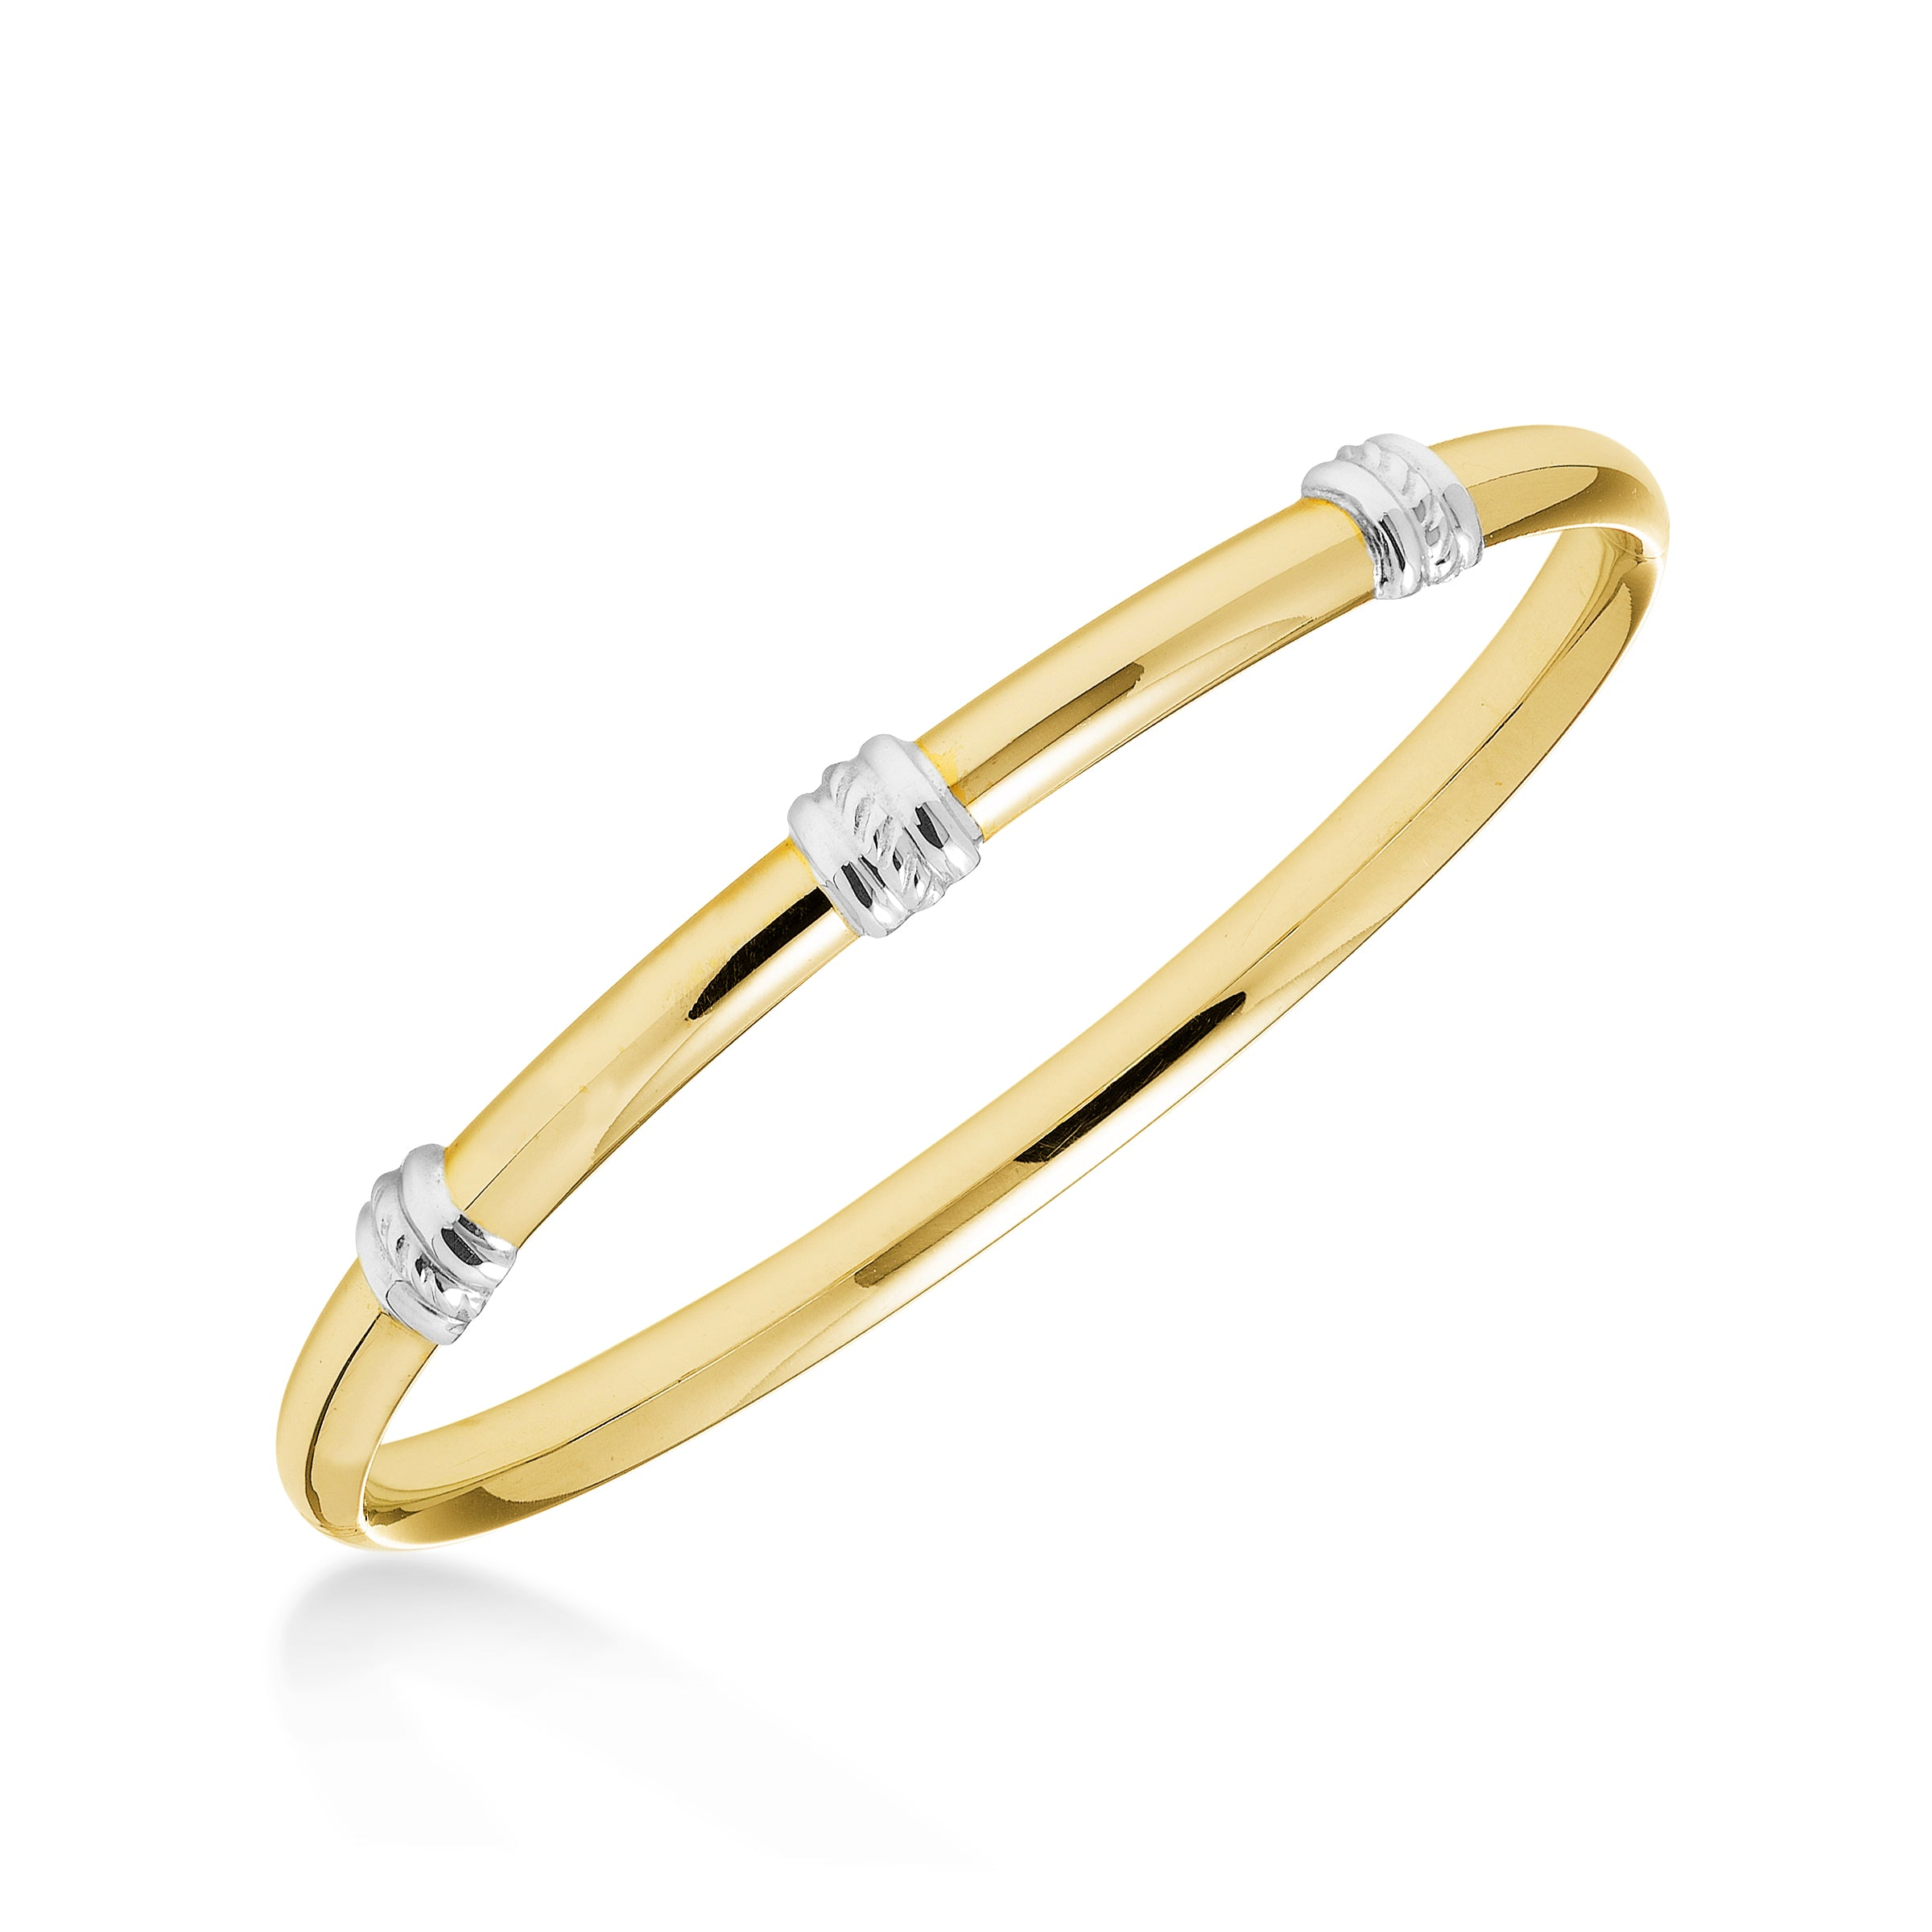 Two Tone Bangle Bracelet, 14K Yellow and White Gold